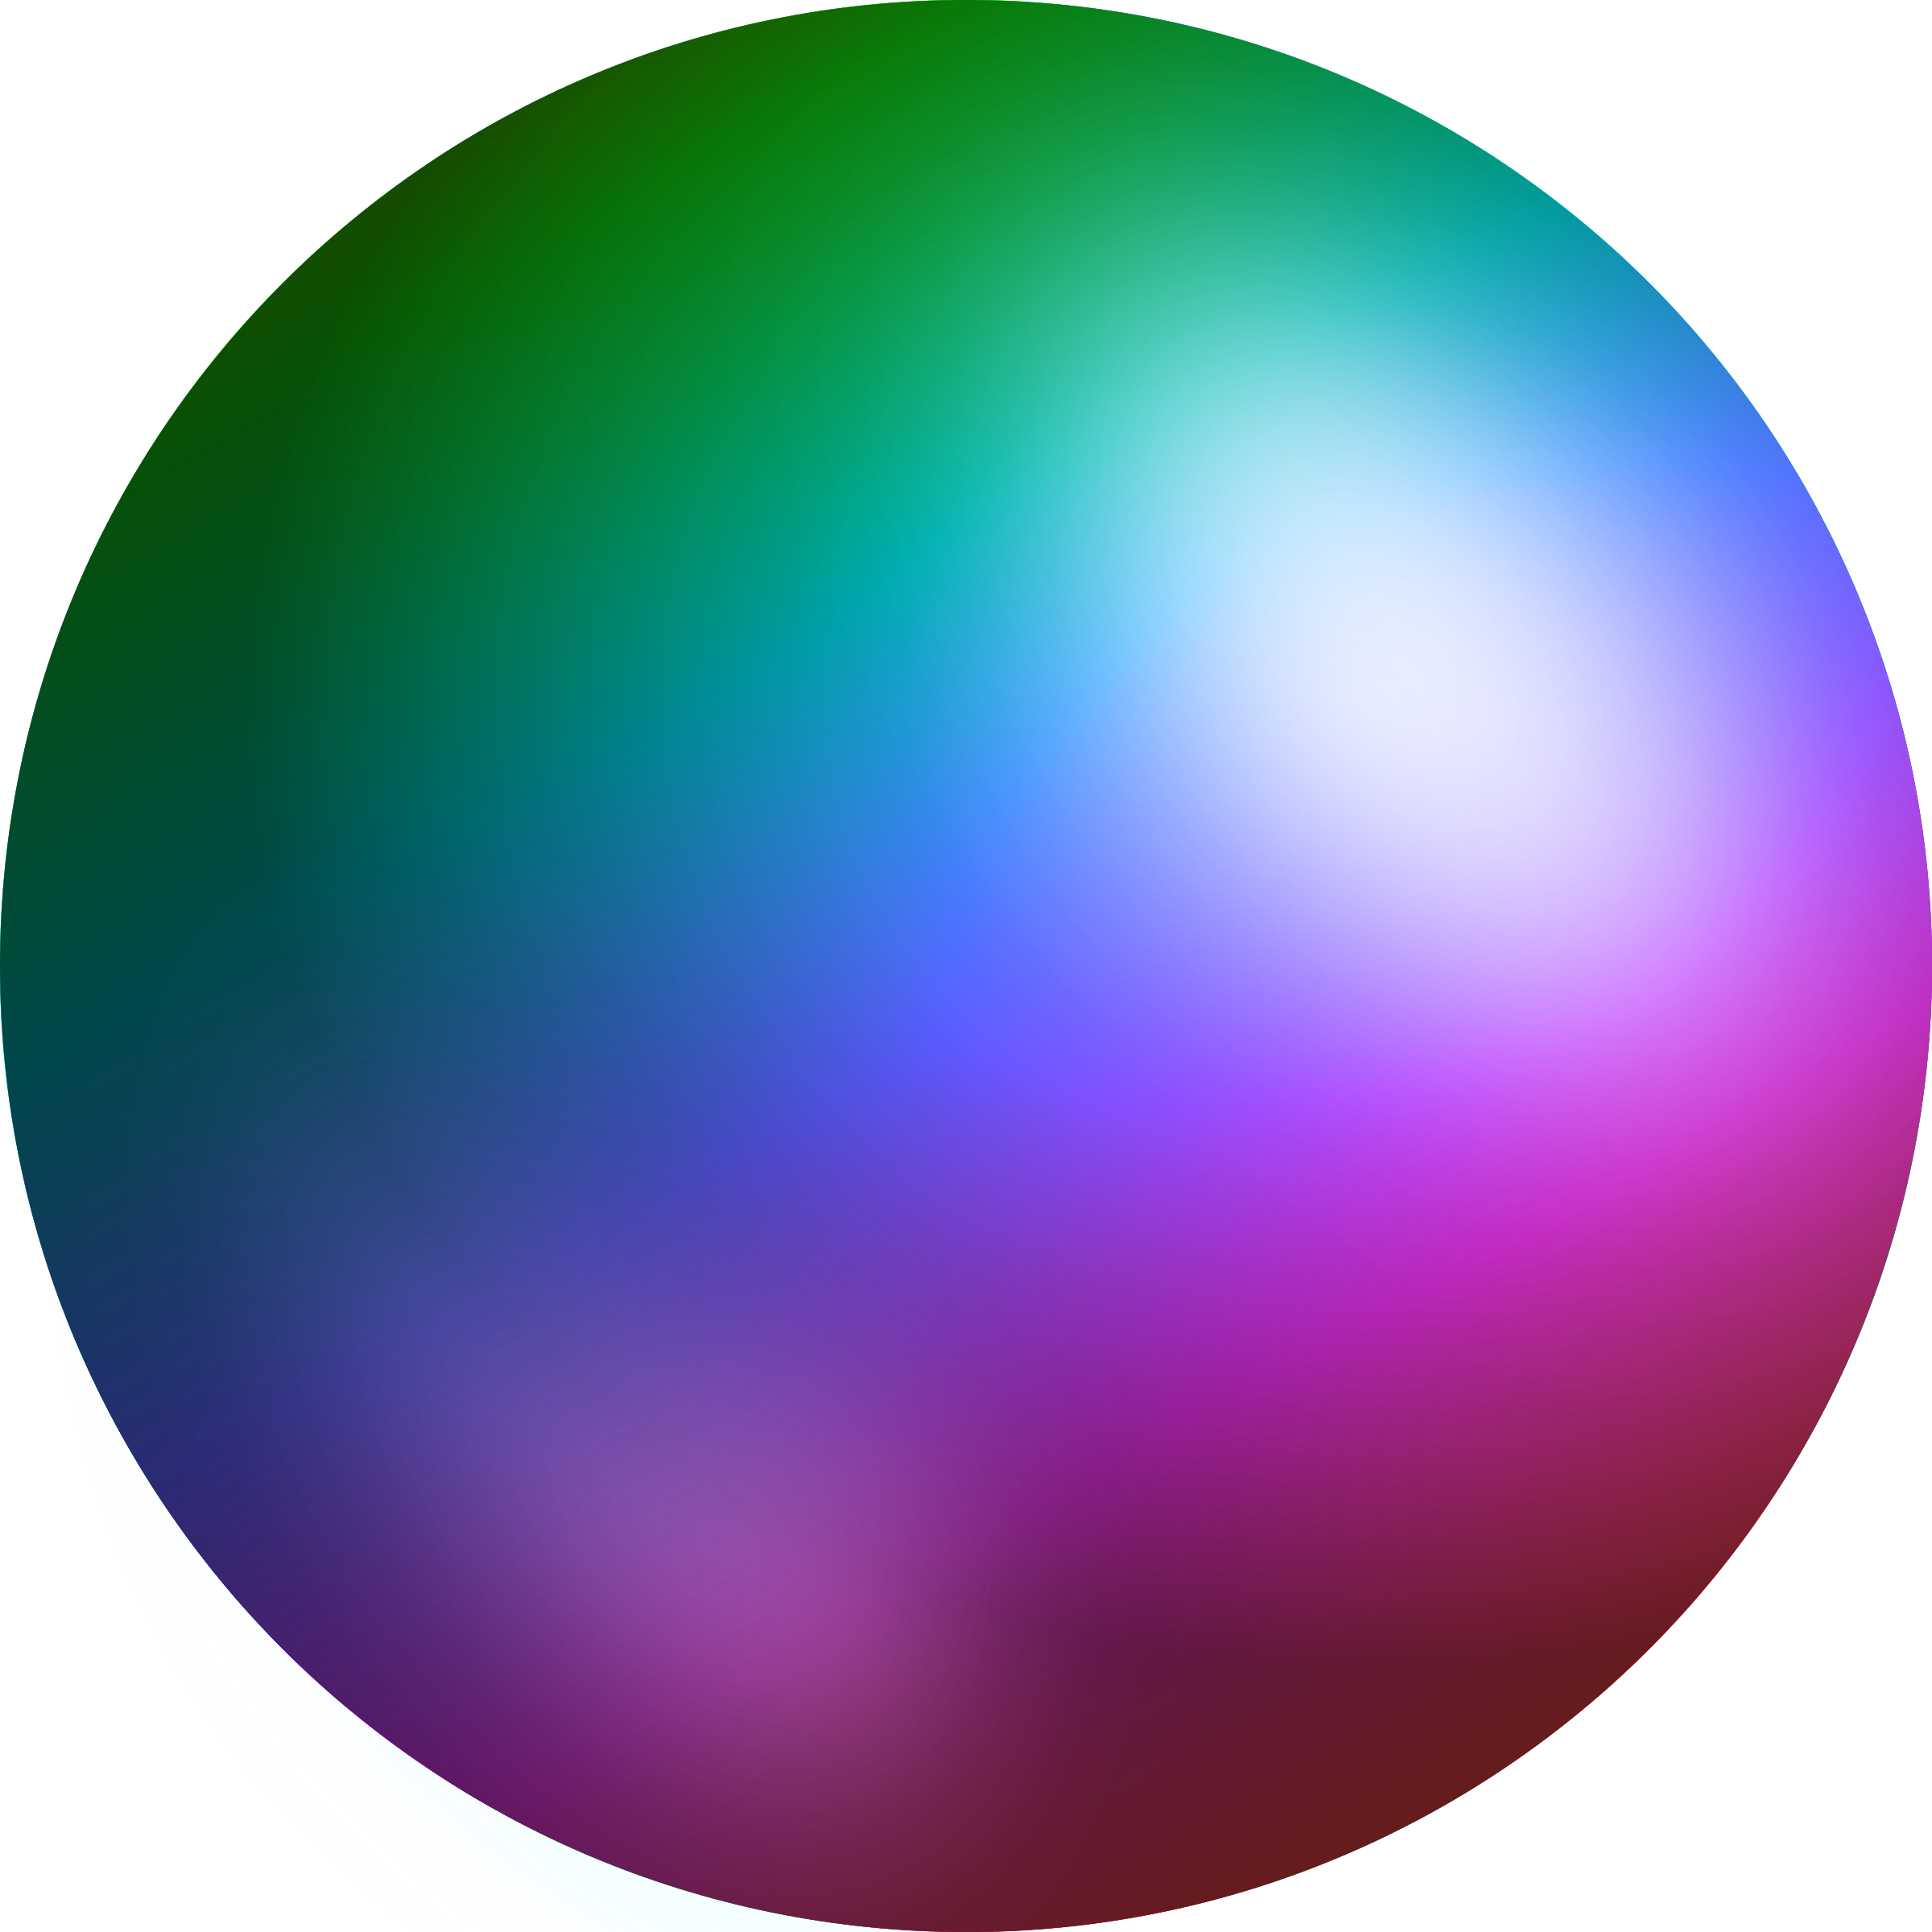 Sphere clipart. Rainbow big image png